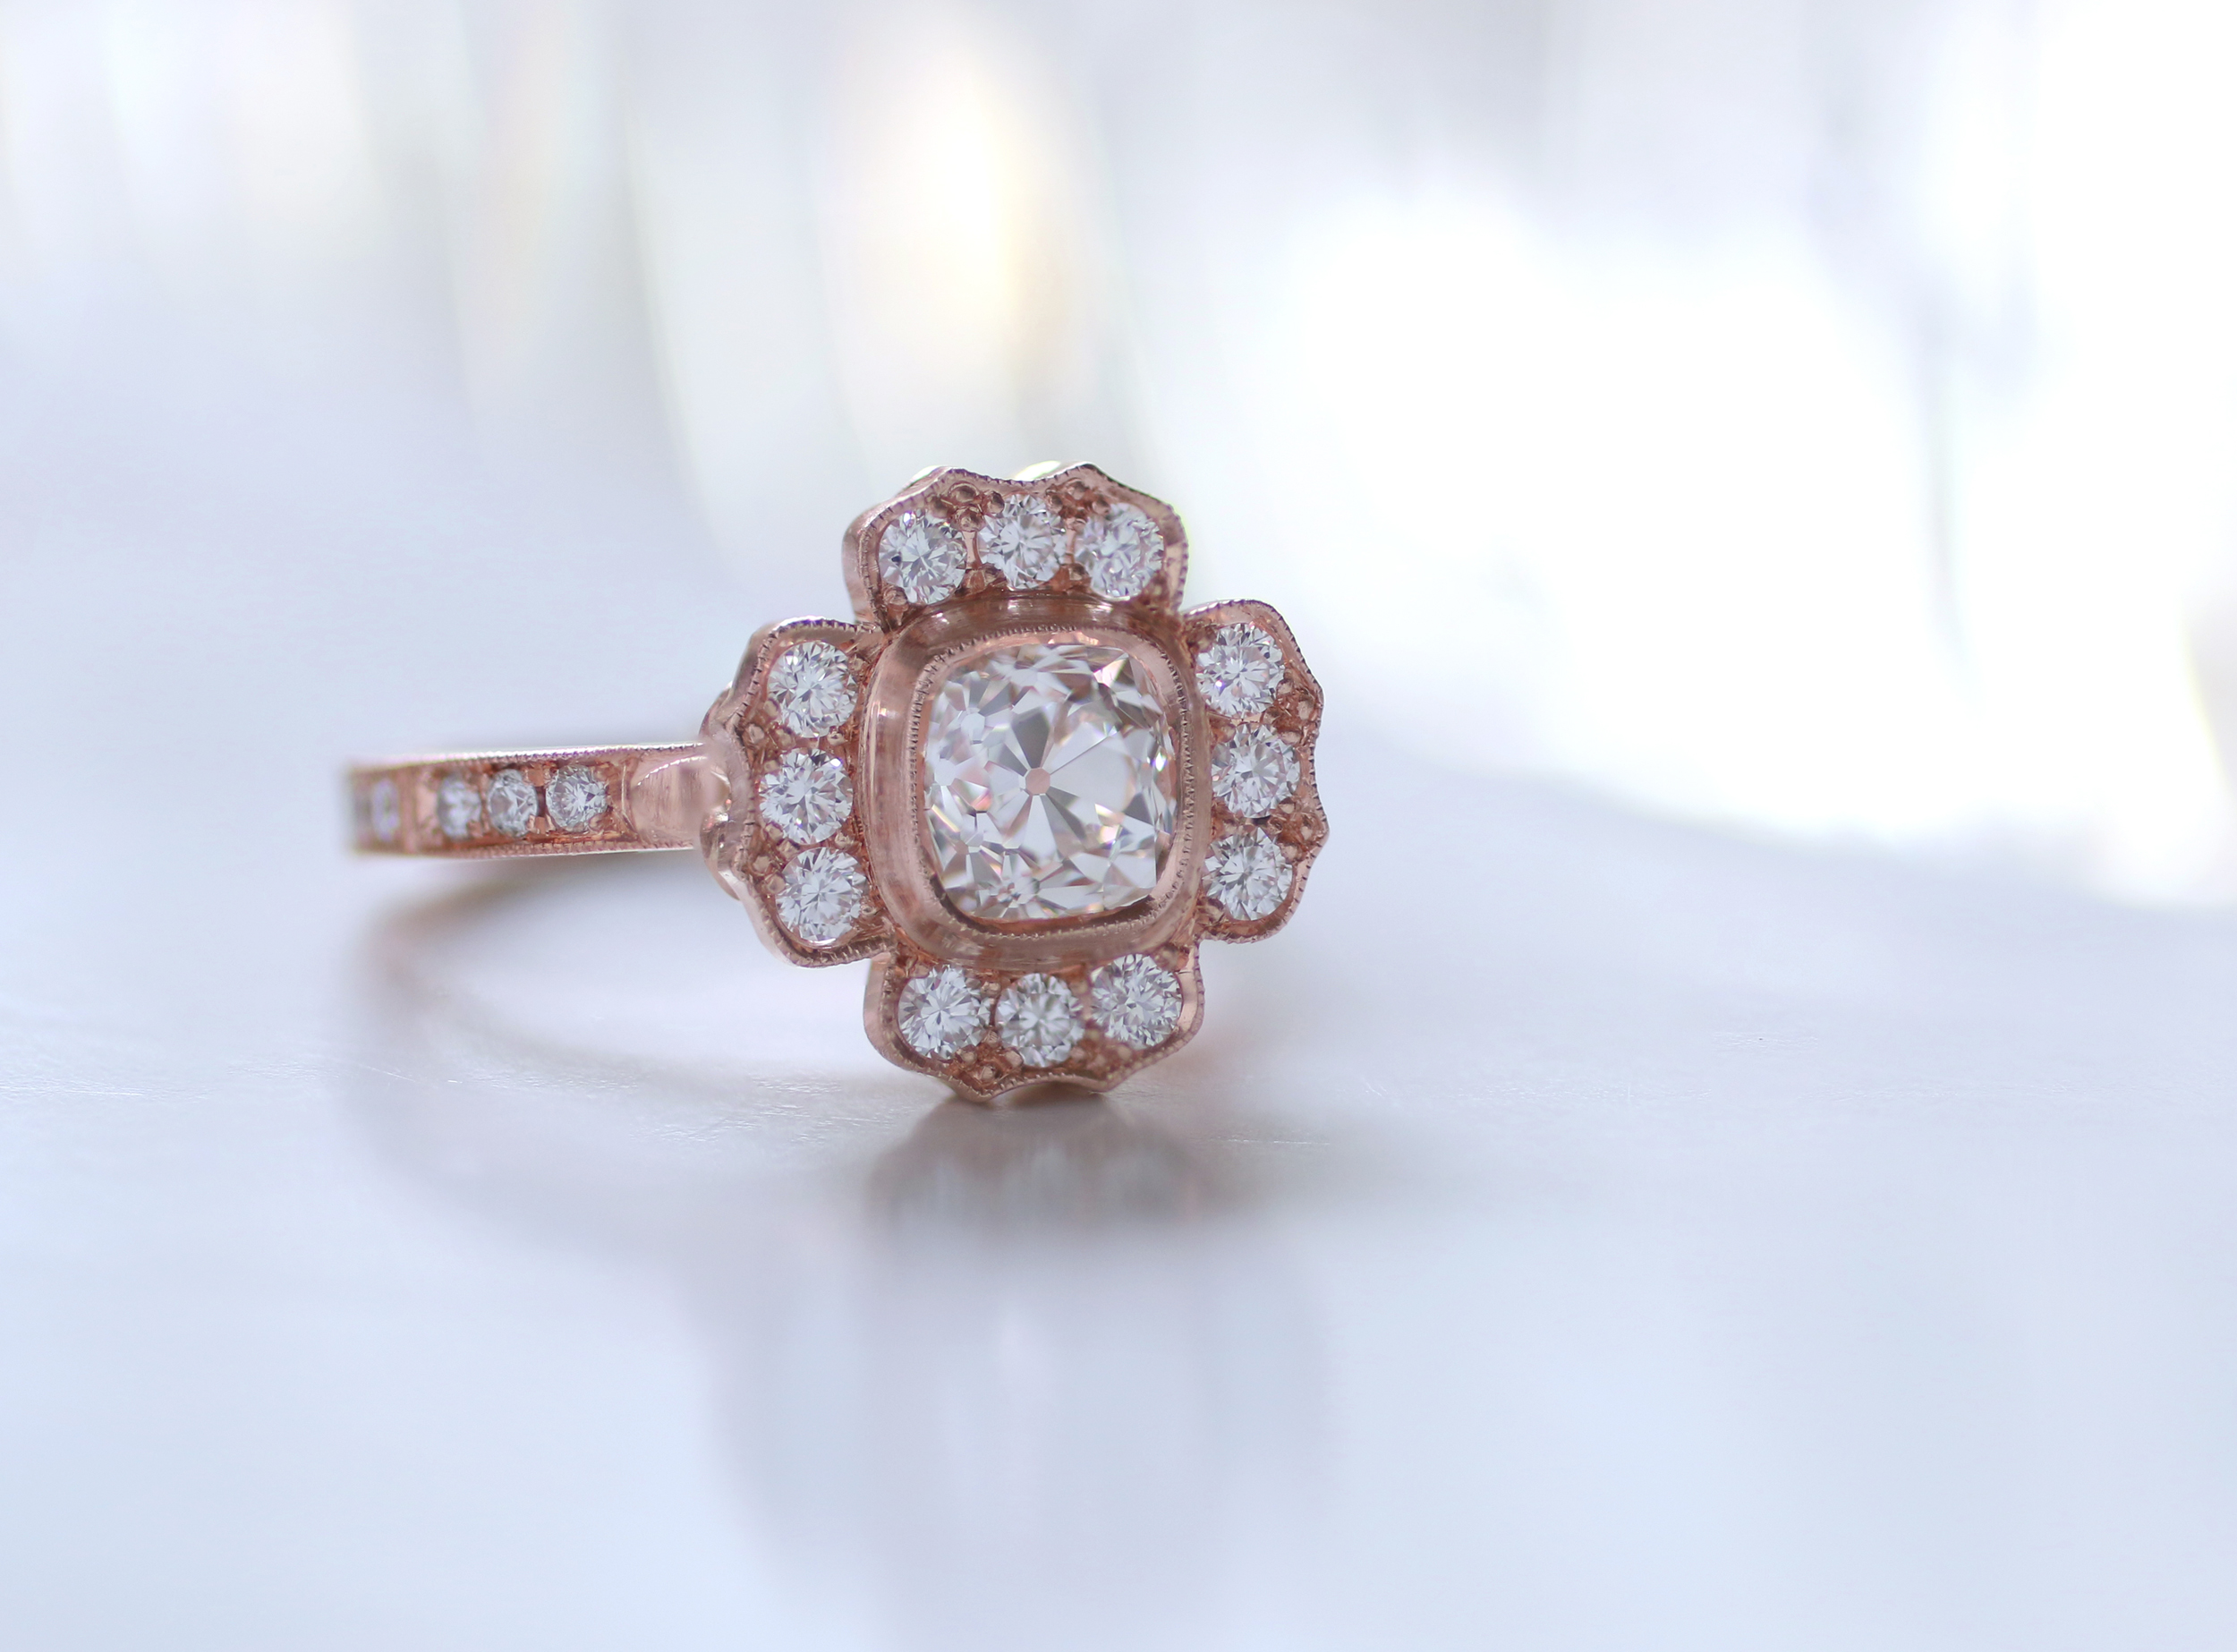 the modern rings handmade pin gold whitediamond xx diamonds timeless bespoke forever diamond ring hex bride solitaire and classic engagement white